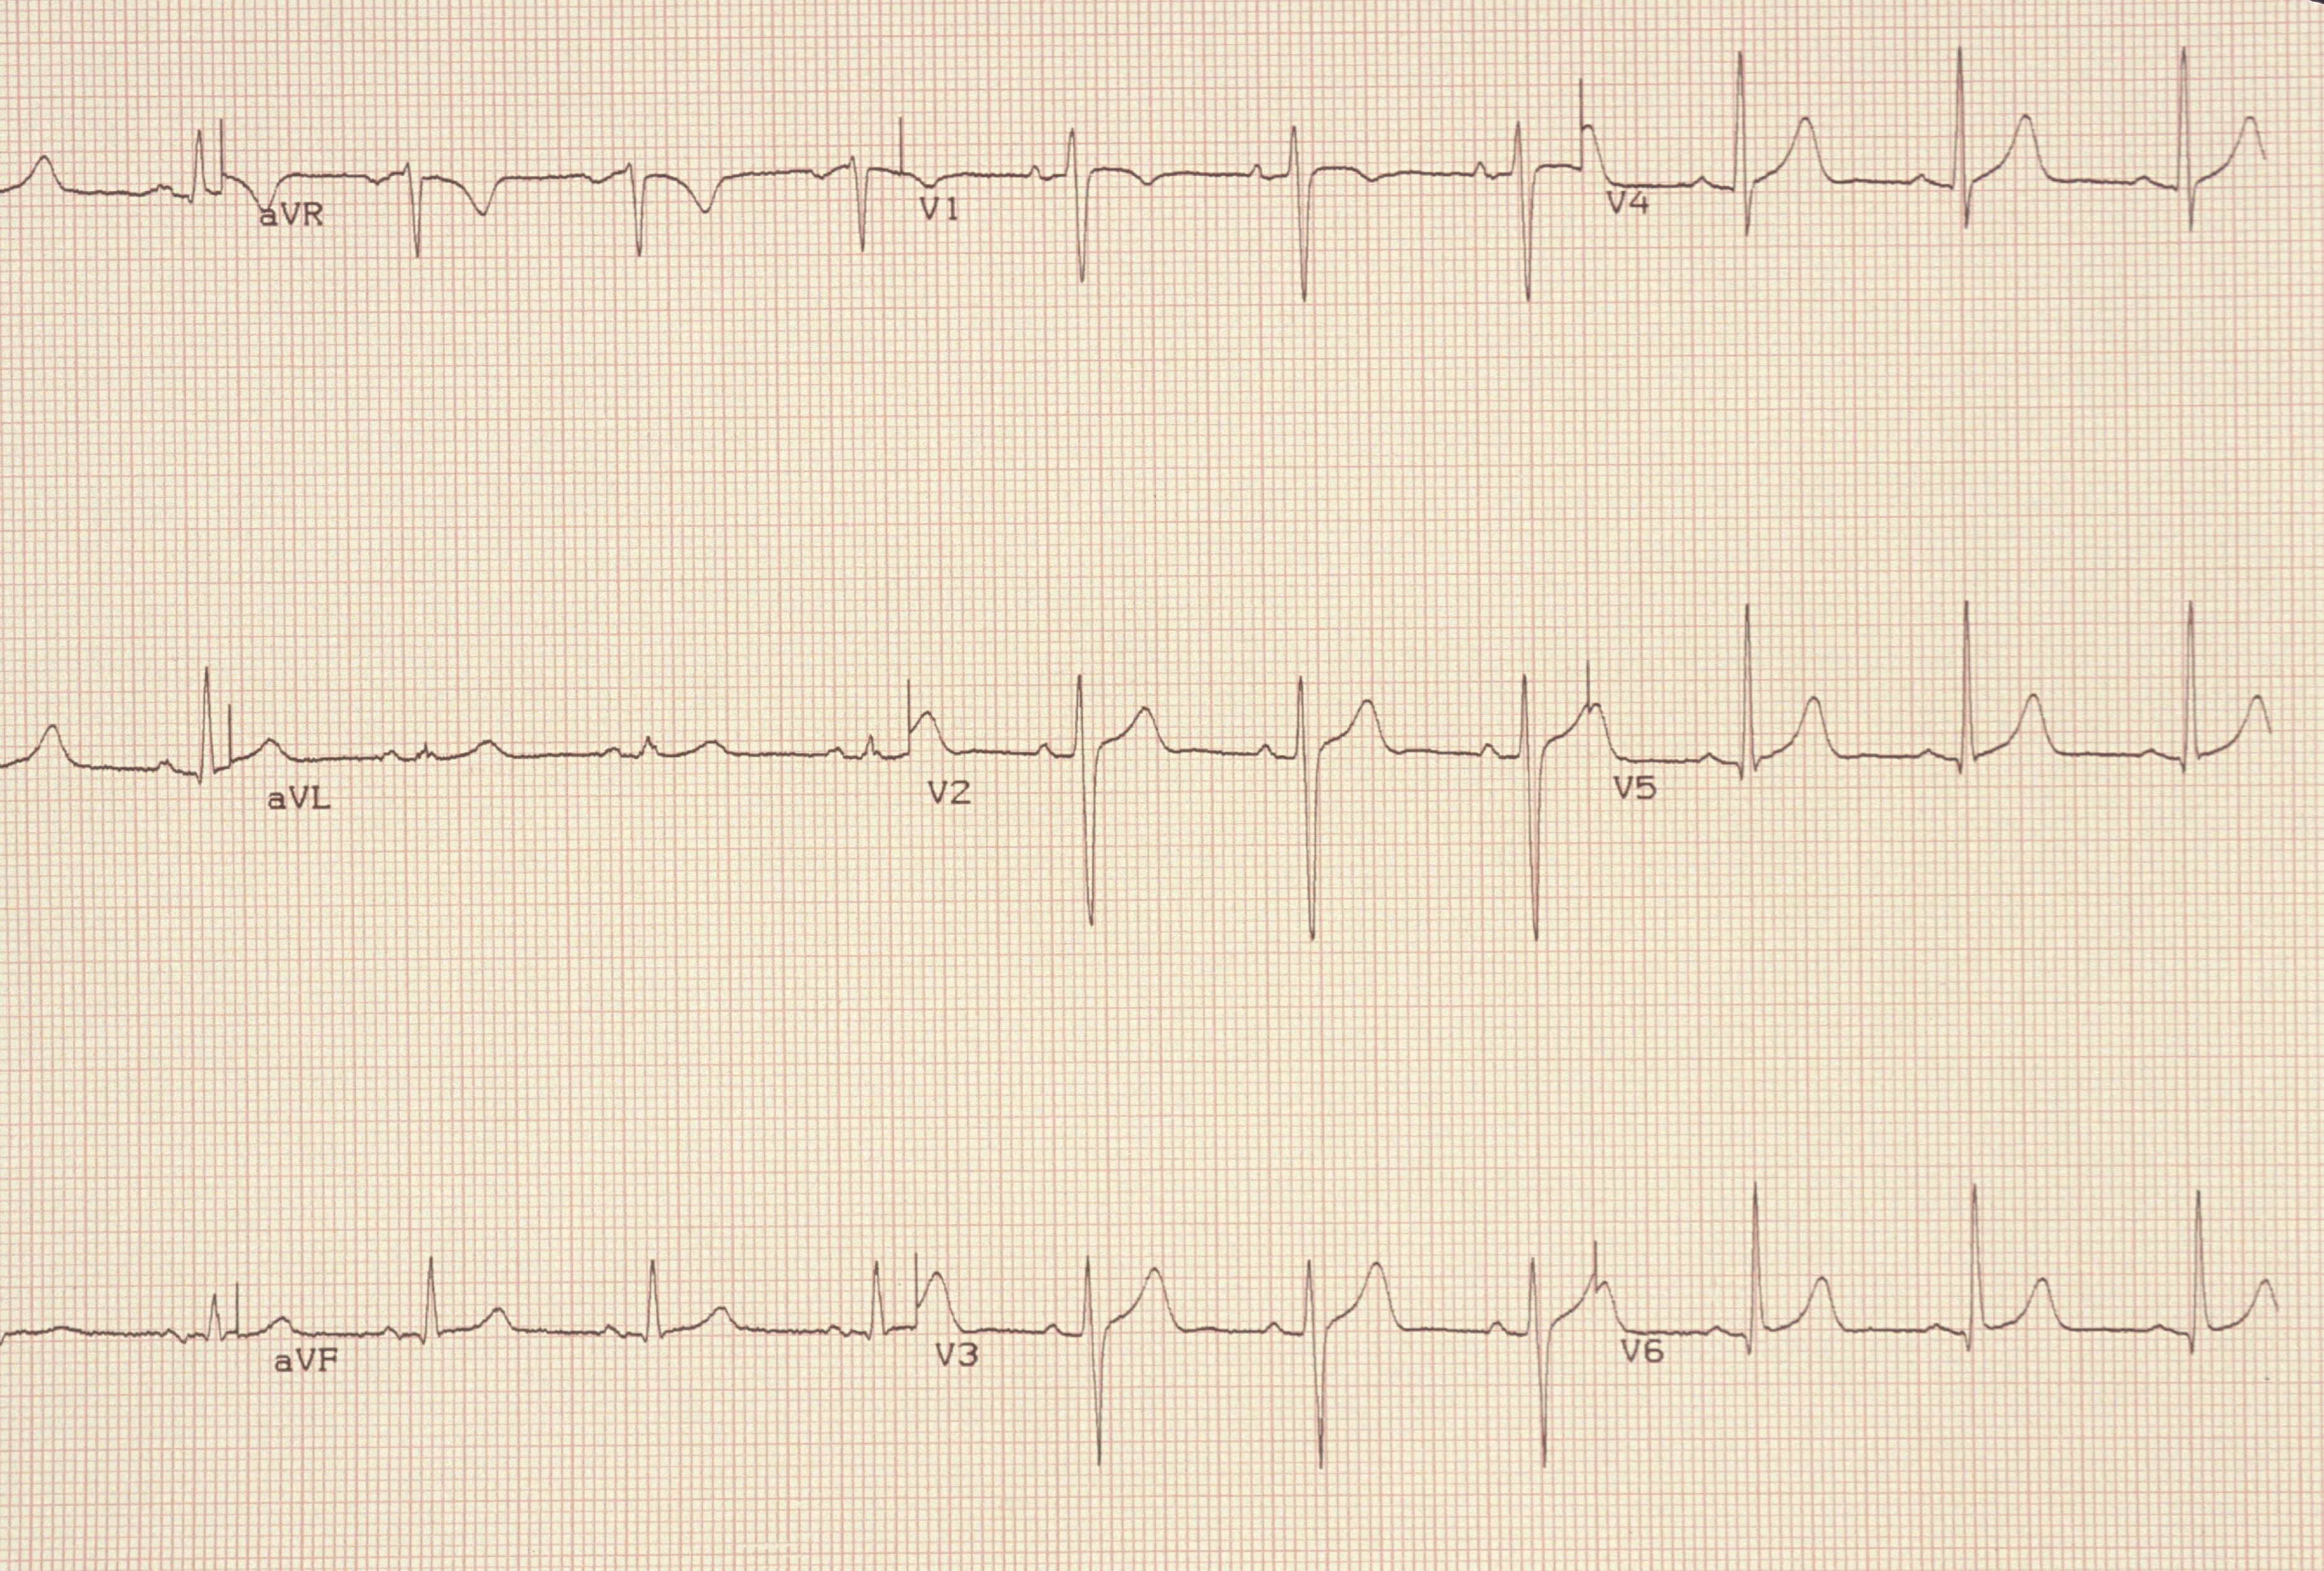 What to Expect from an Electrocardiogram (ECG)